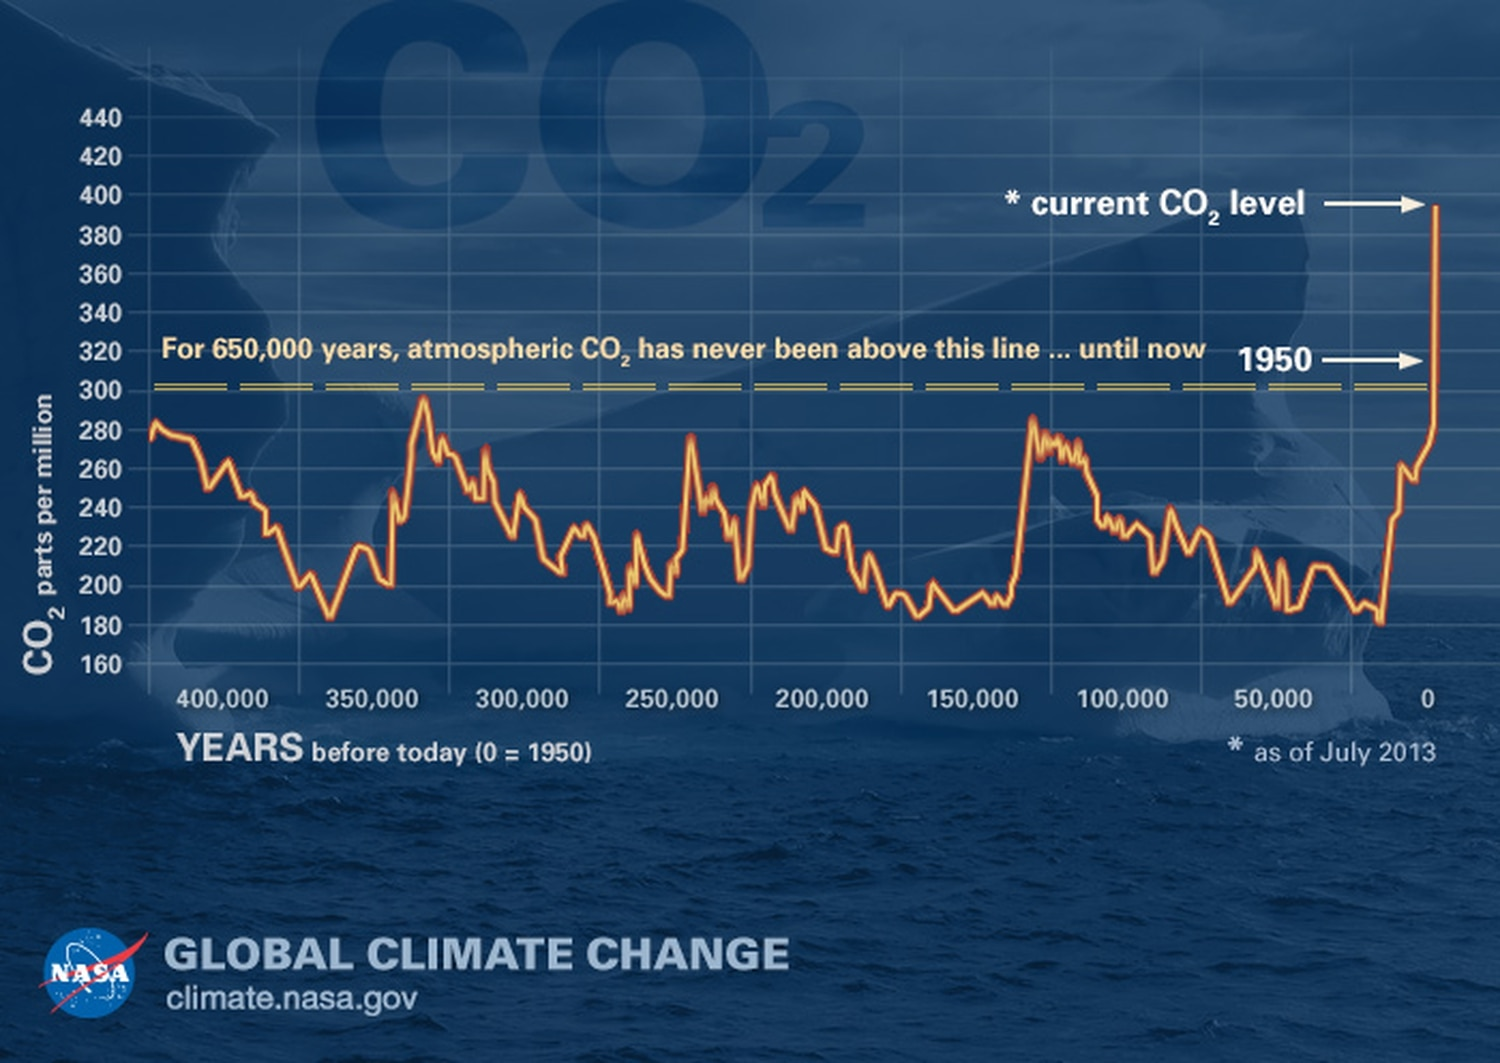 According to NASA, carbon dioxide levels in the atmosphere are higher than they have been at any time in the past 400,000 years. During ice ages, levels were about 200 parts per million (ppm), and during the warmer interglacial periods, they were about 280 ppm. In 2013, they rose above 400 ppm for the first time in recorded history.